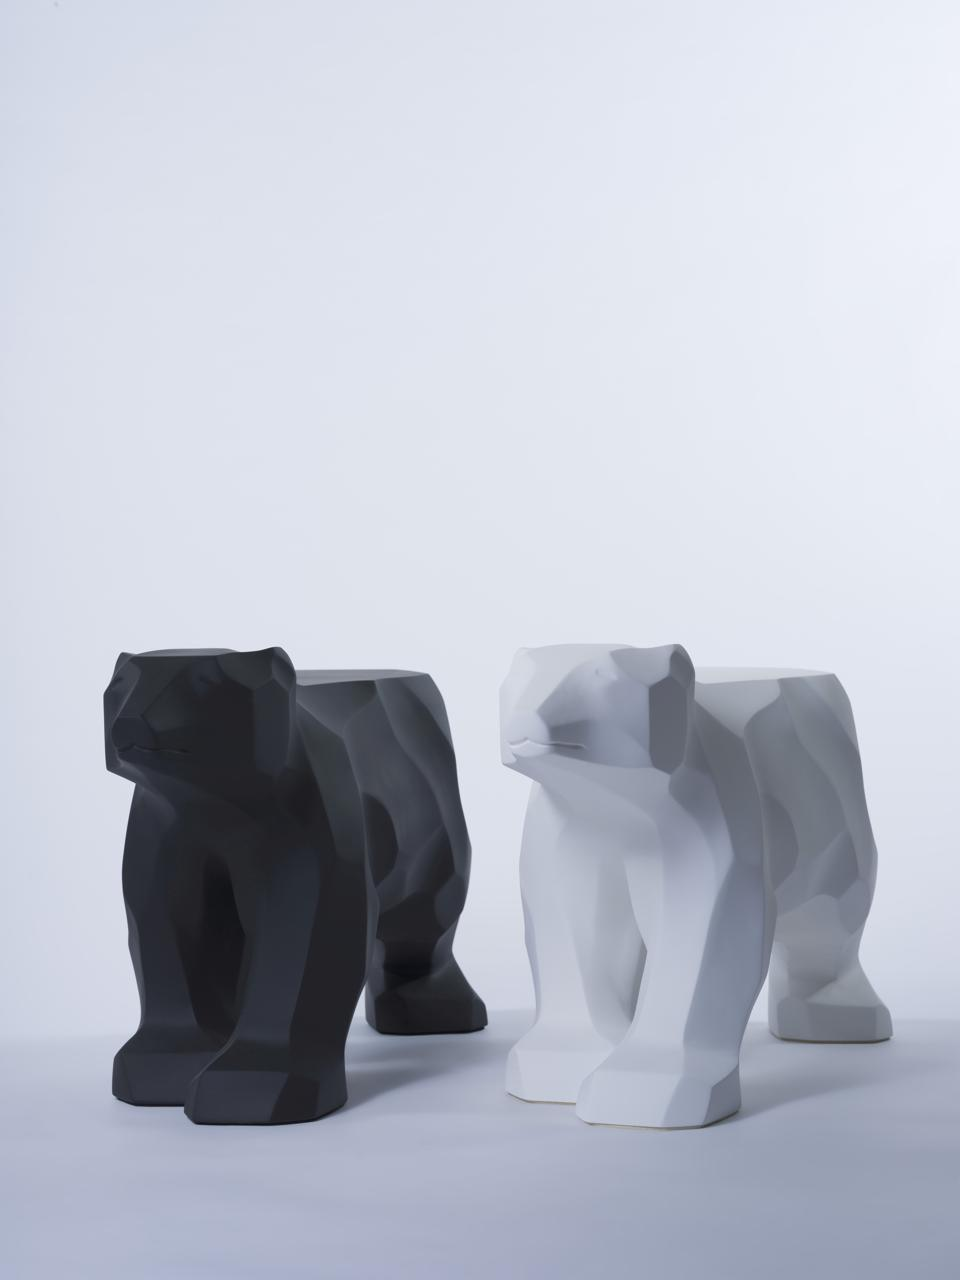 Walking Bears - Moss and Lam's Collaboration with Holly Hunt